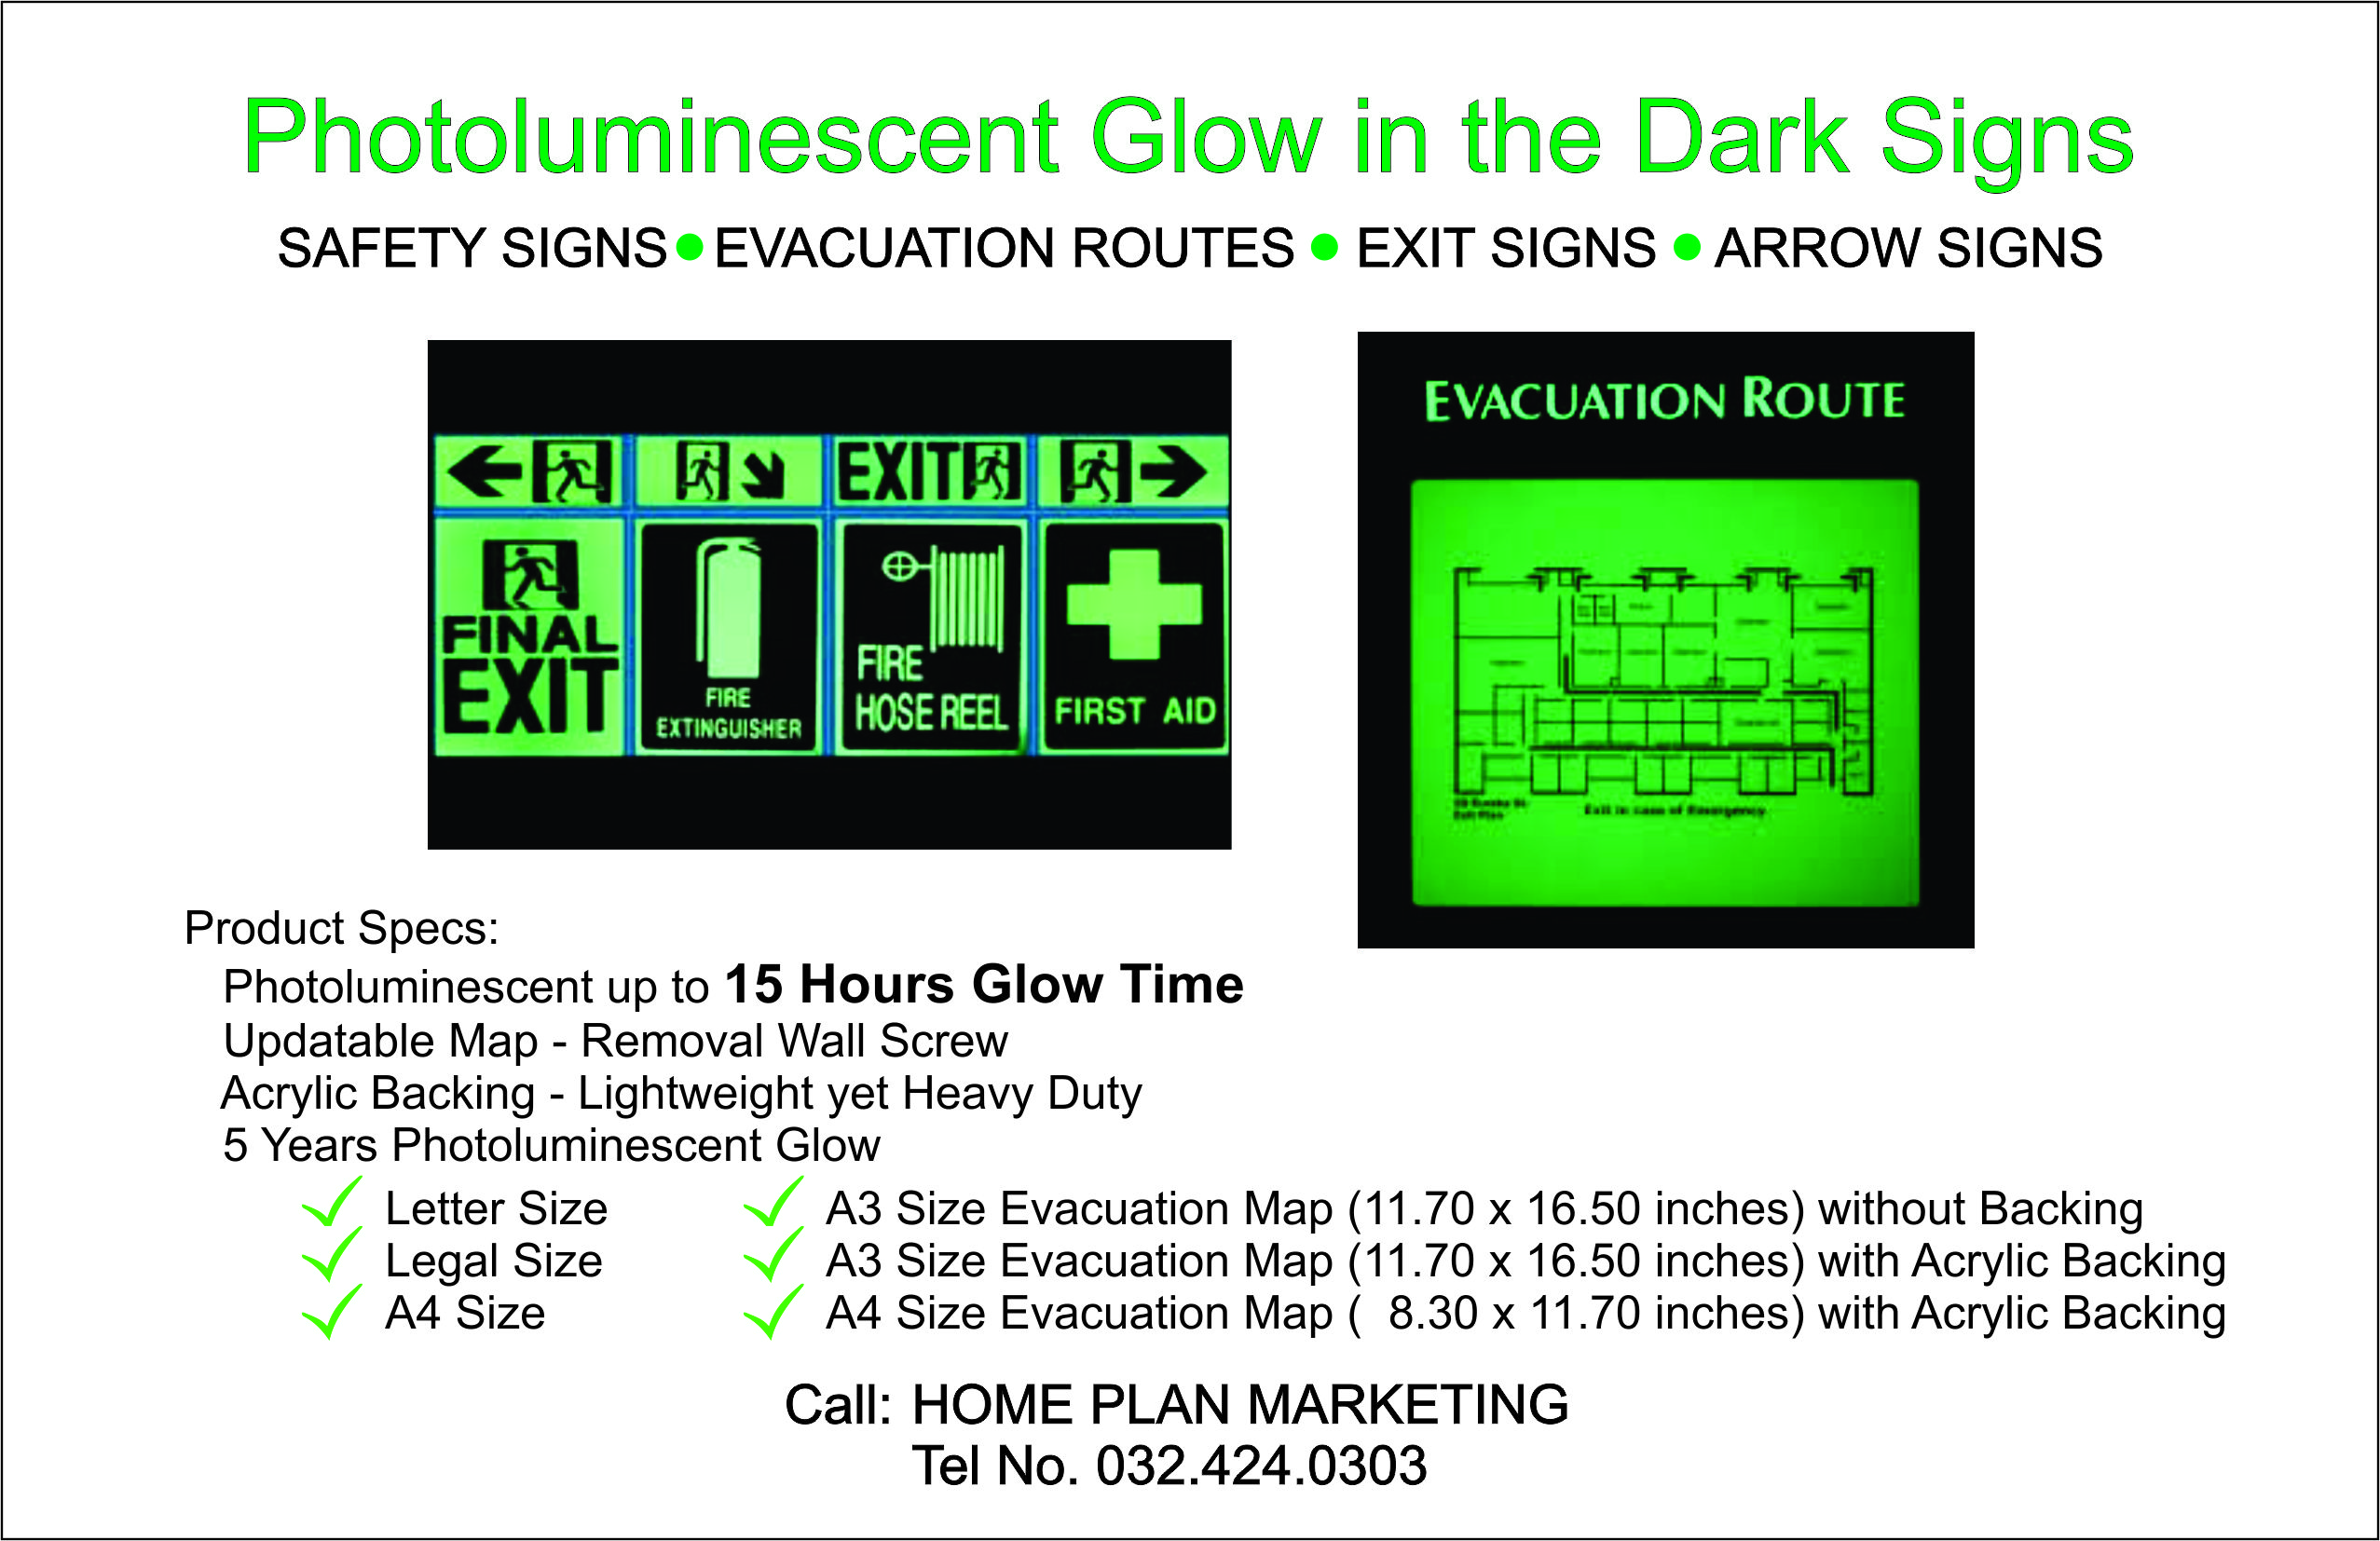 Photoluminescent Glow in the Dark Signs